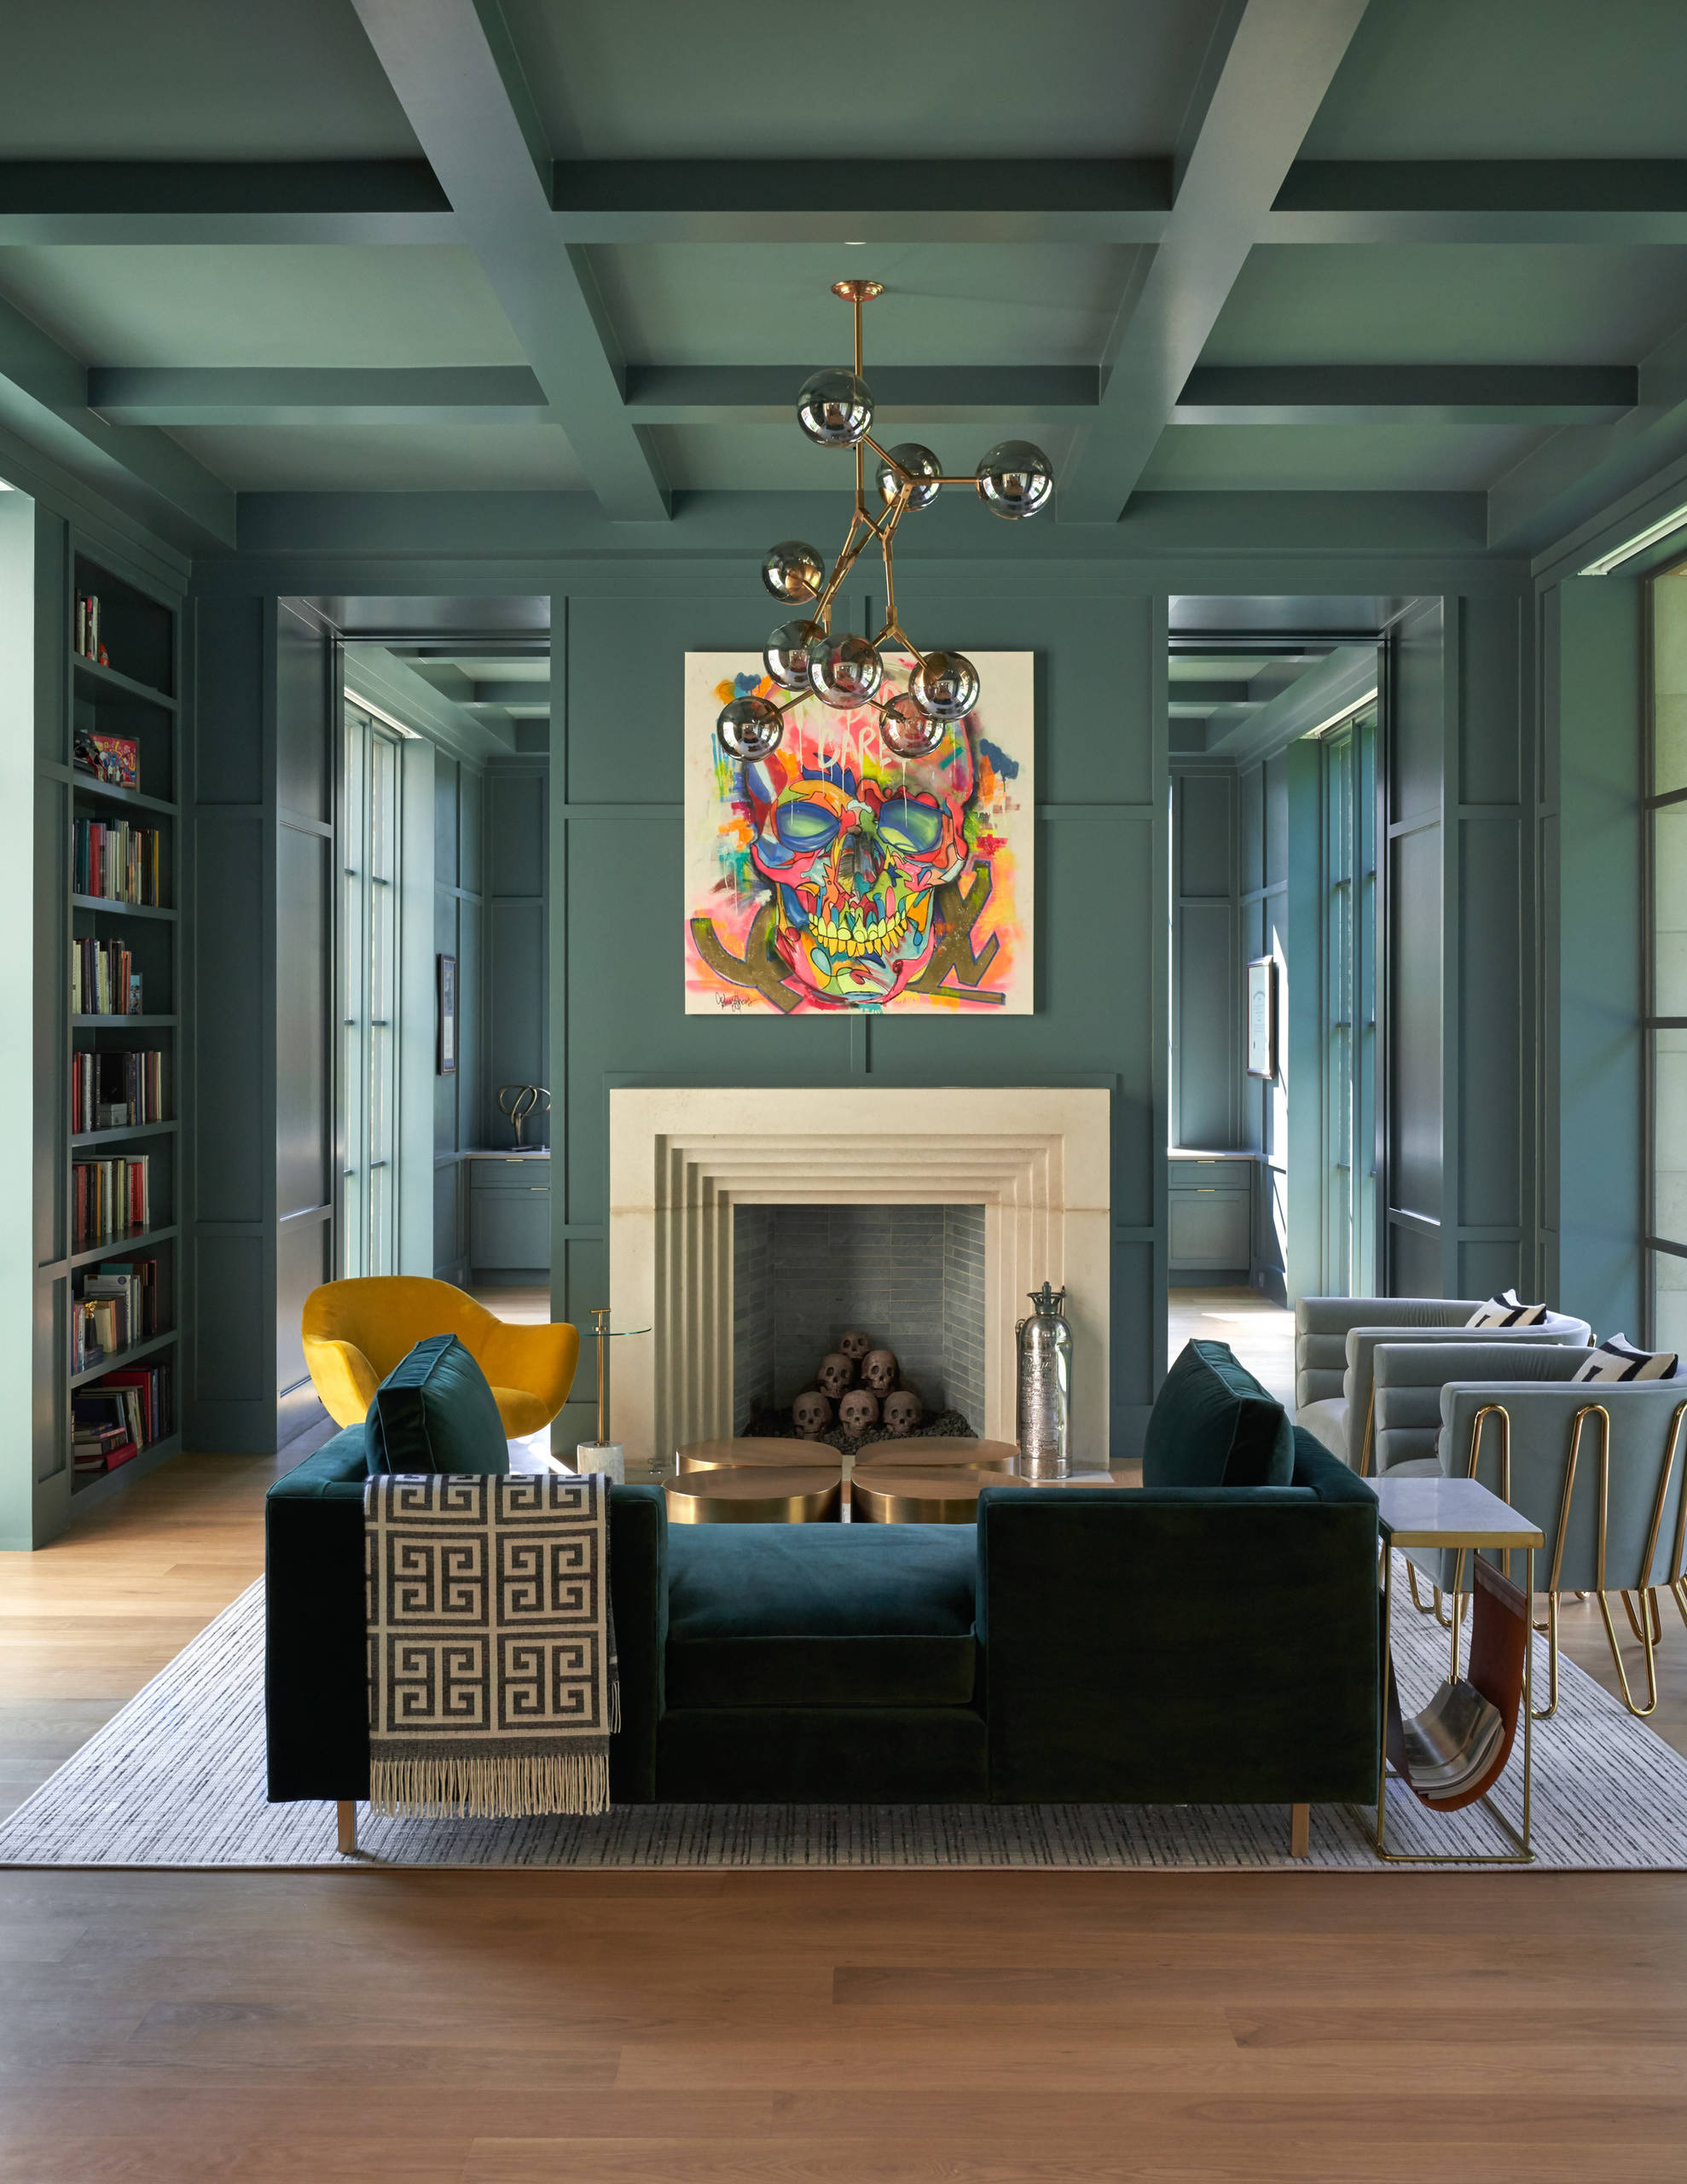 75 Beautiful Eclectic Living Room Pictures Ideas February 2021 Houzz